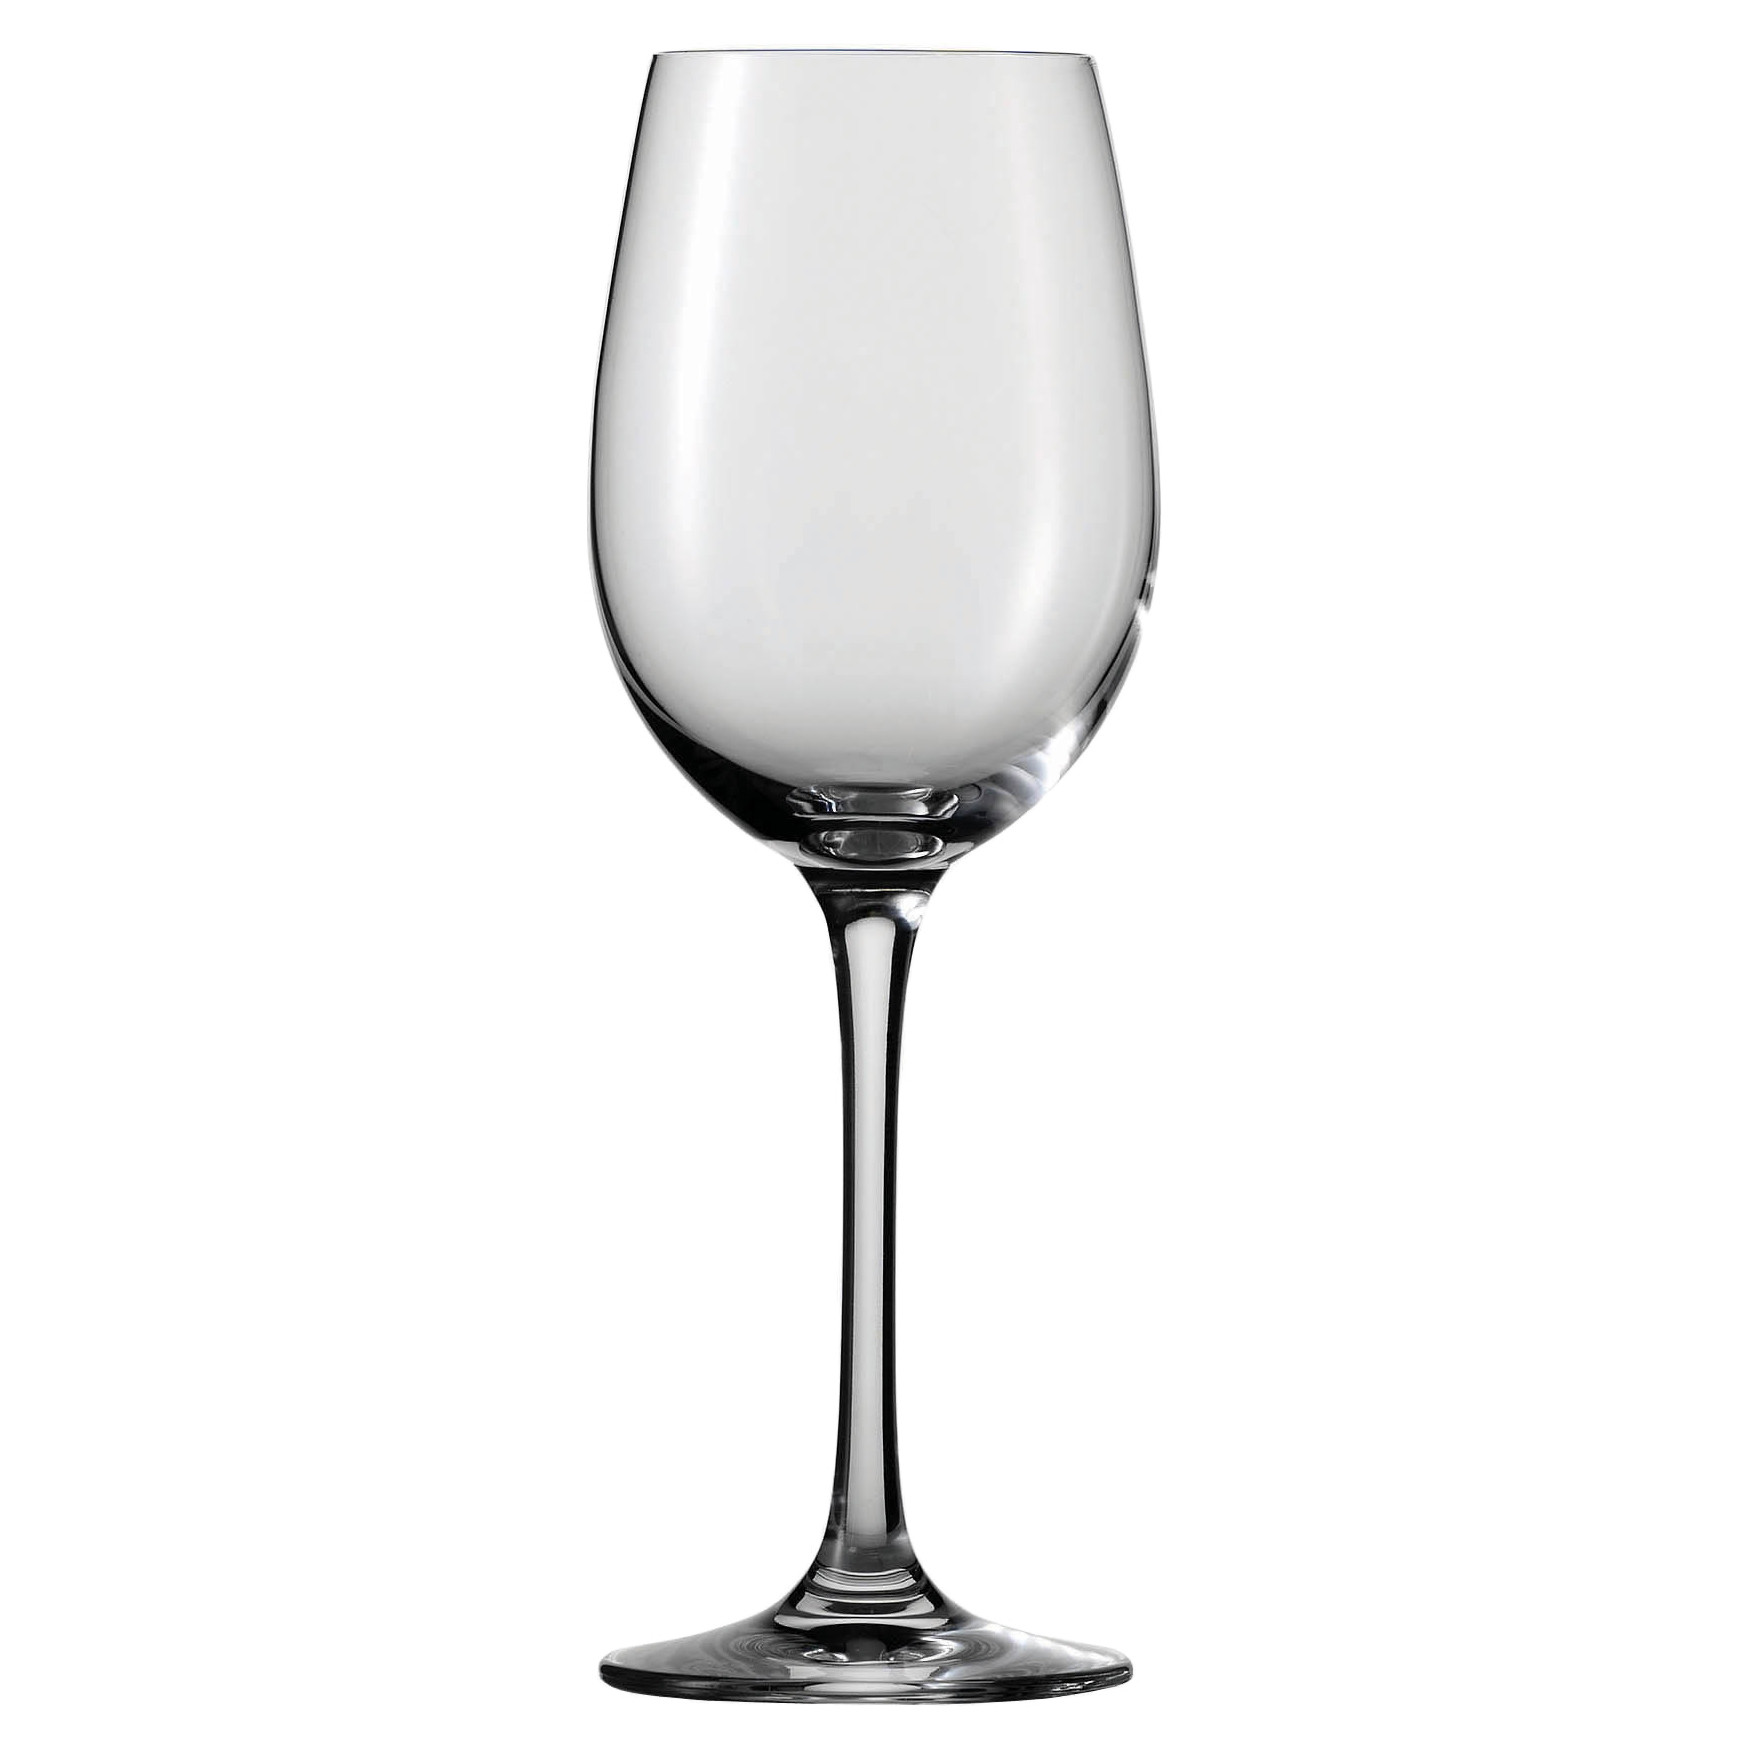 Wine Glasses German Brands | Schott Zwiesel Wine Glasses | Schott Glass Catalog